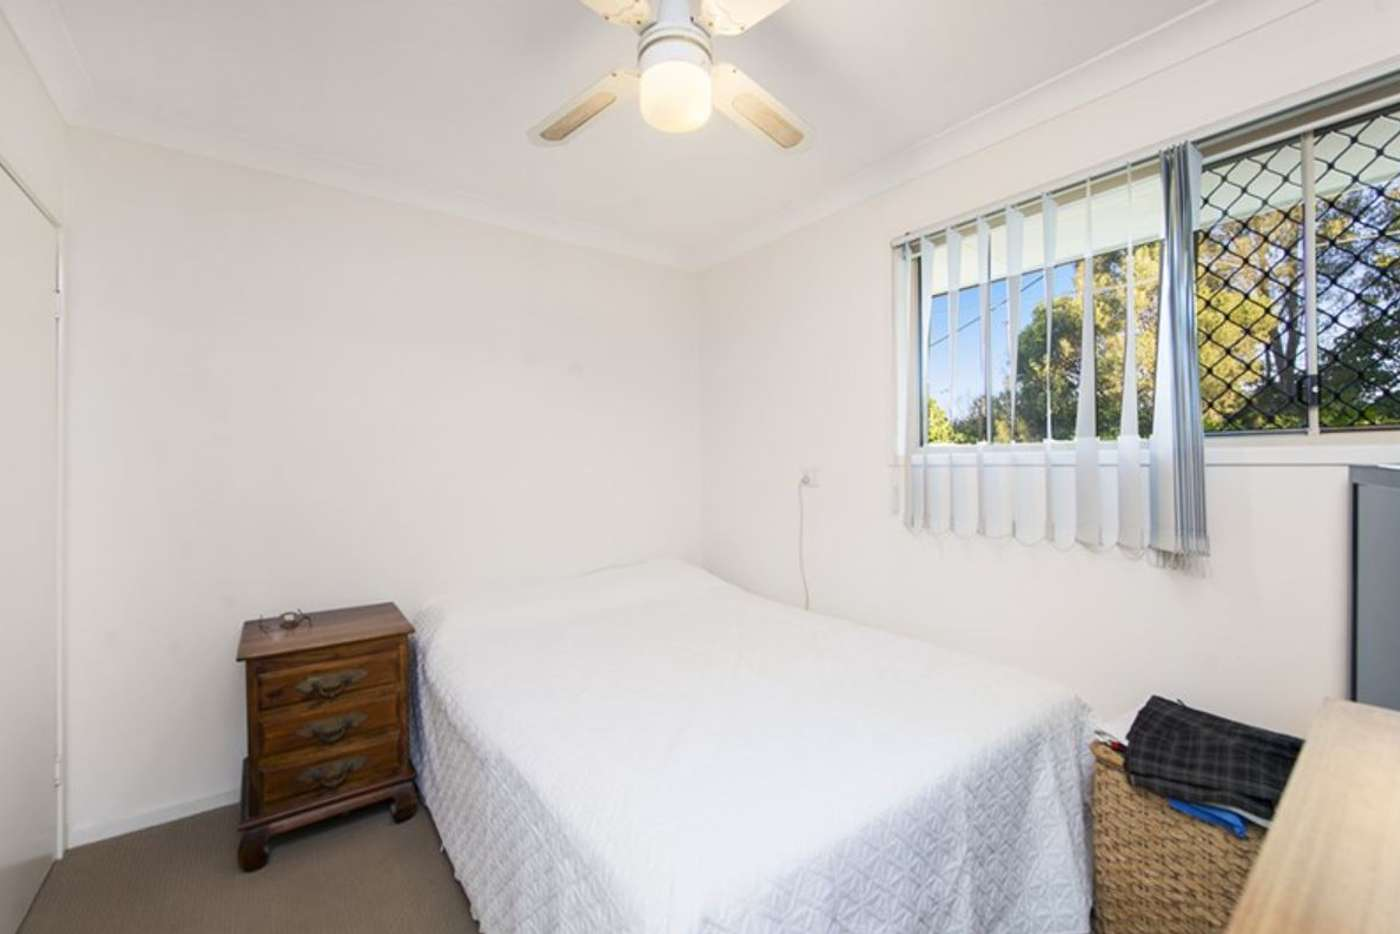 Sixth view of Homely house listing, 1 Baratta Street, Southport QLD 4215